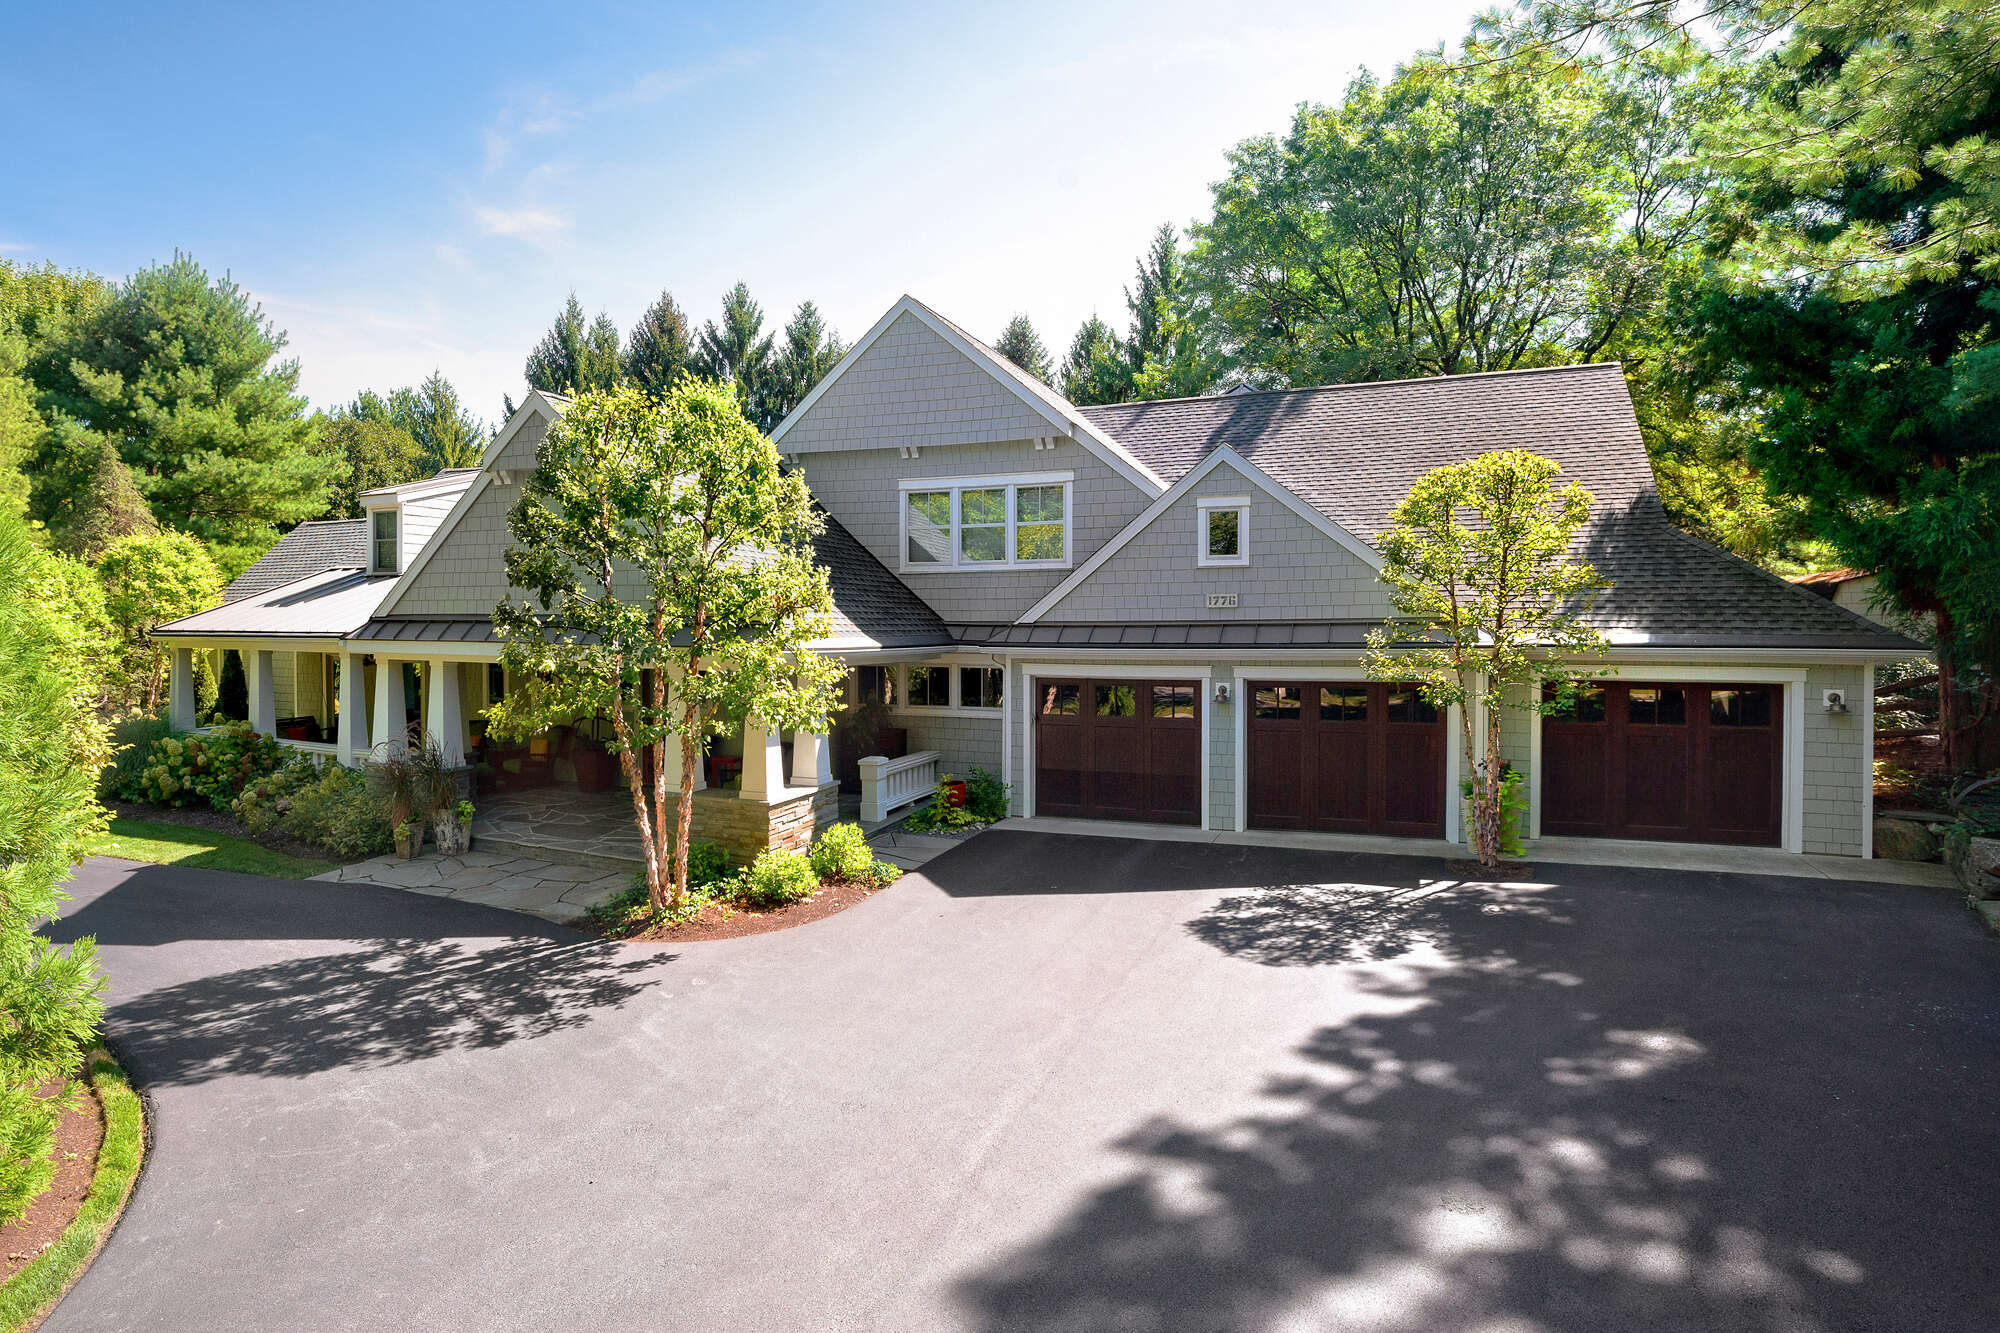 Single Family for Sale at 1776 Reading Blvd Wyomissing, Pennsylvania 19610 United States